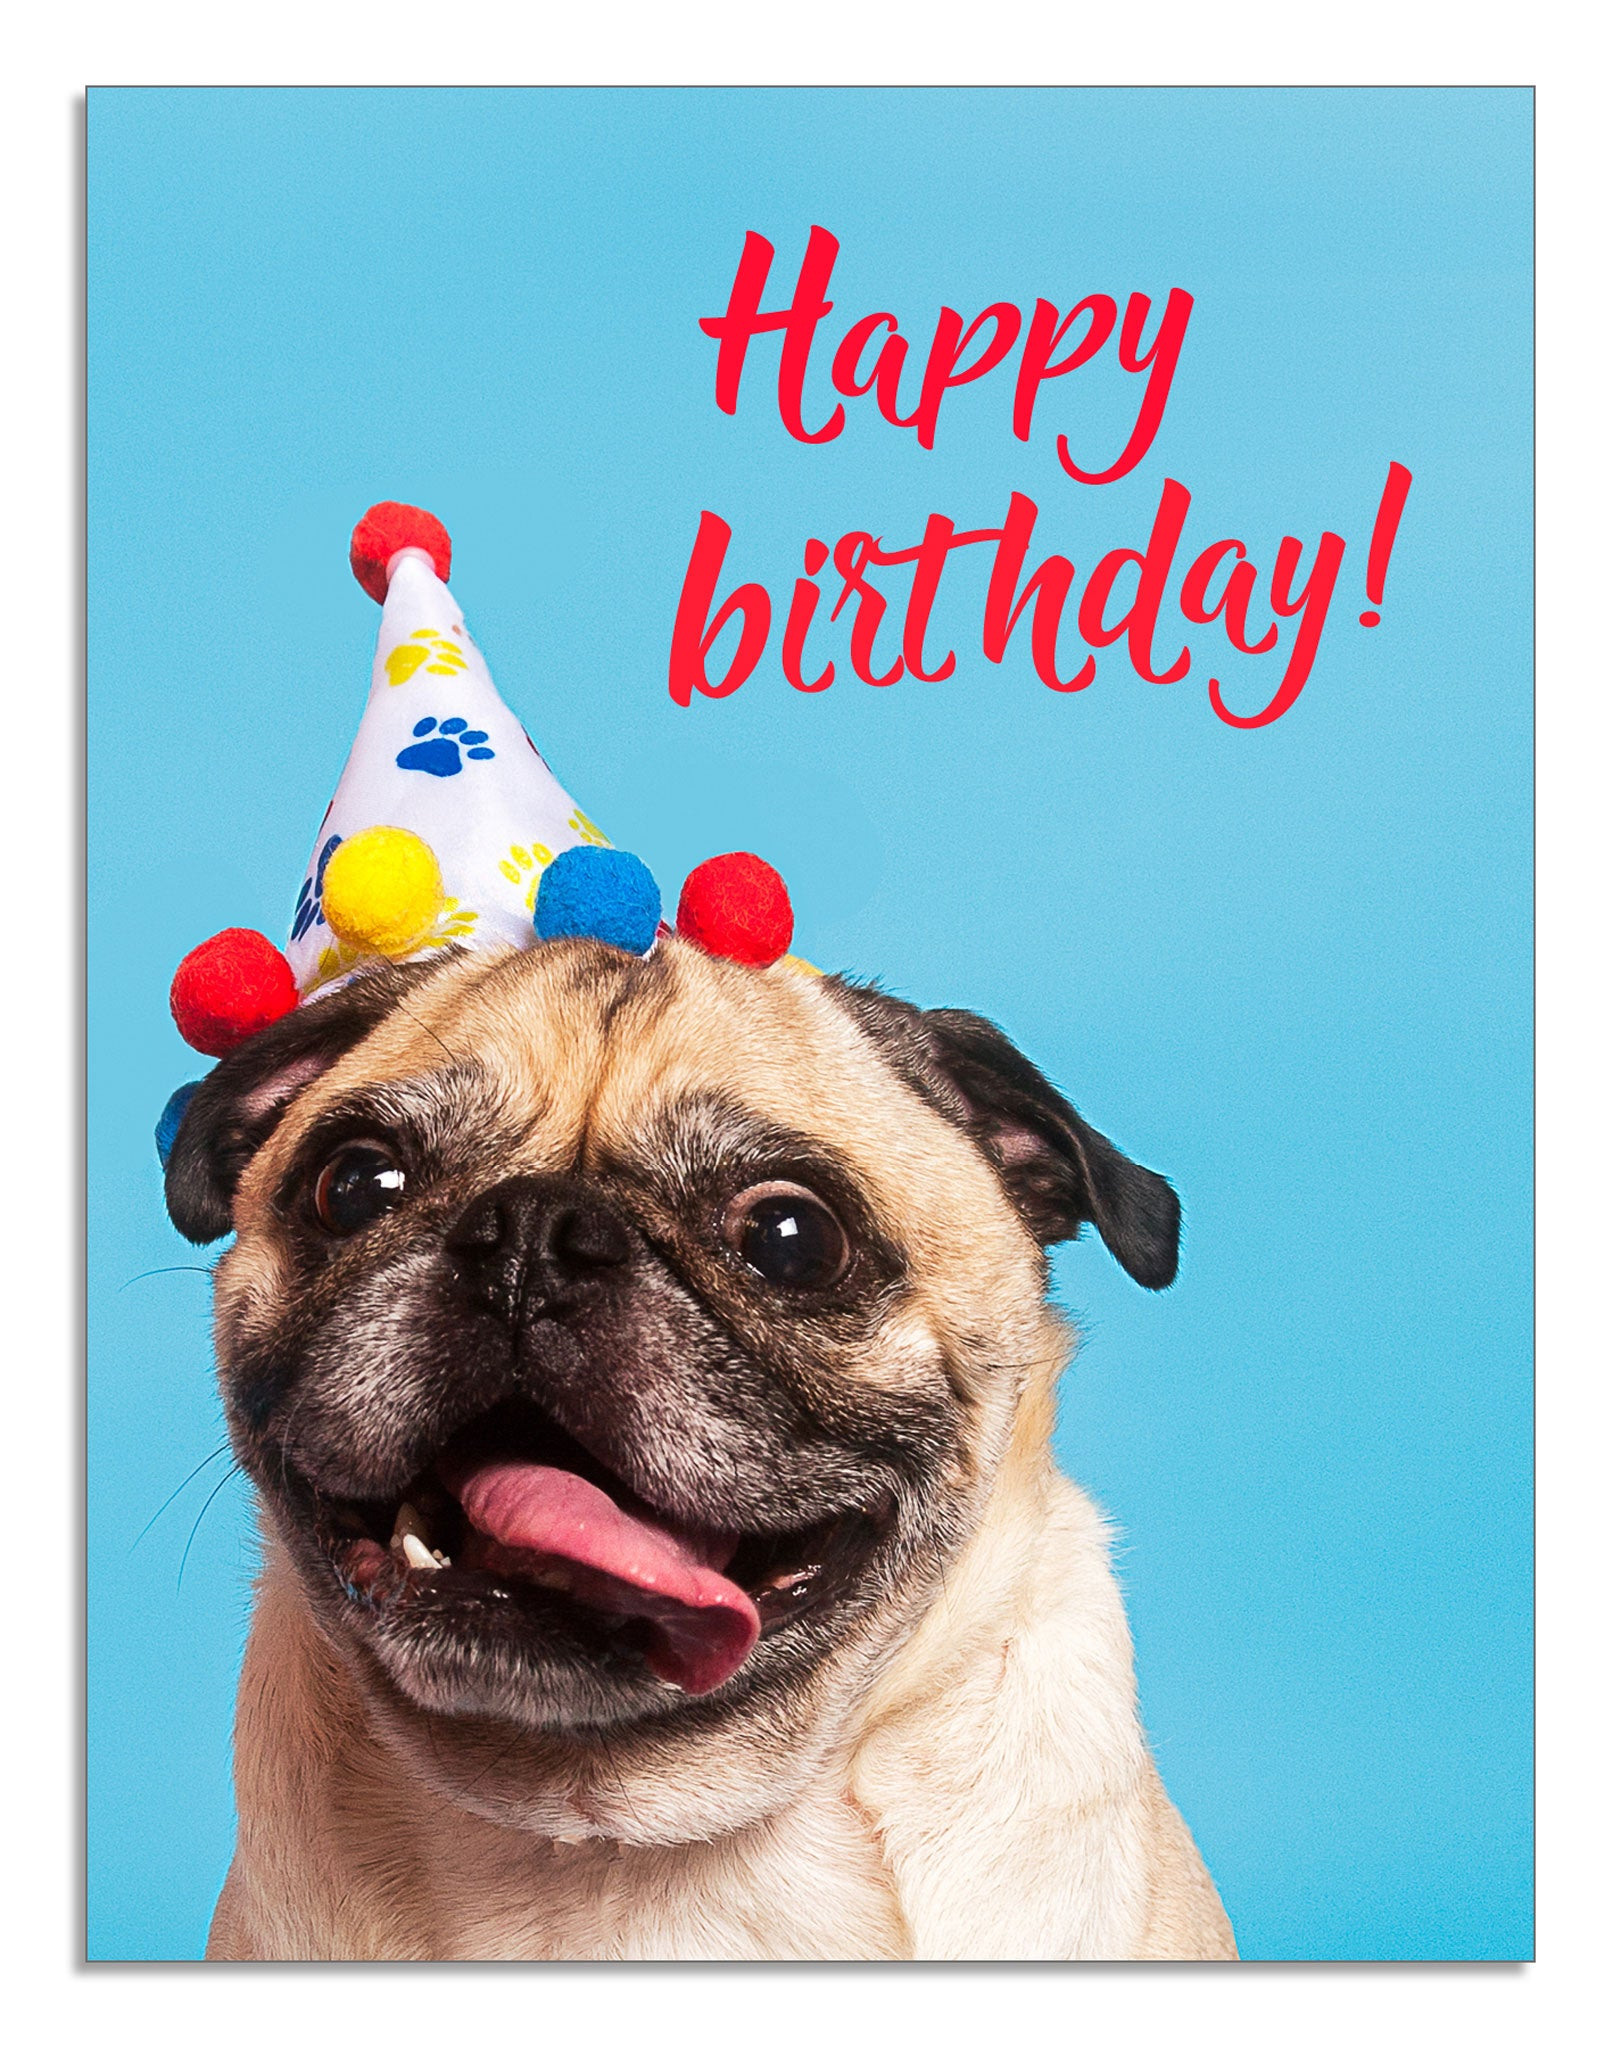 Smiling Pug Card Wishing You Happy Birthday By Blusys Creative